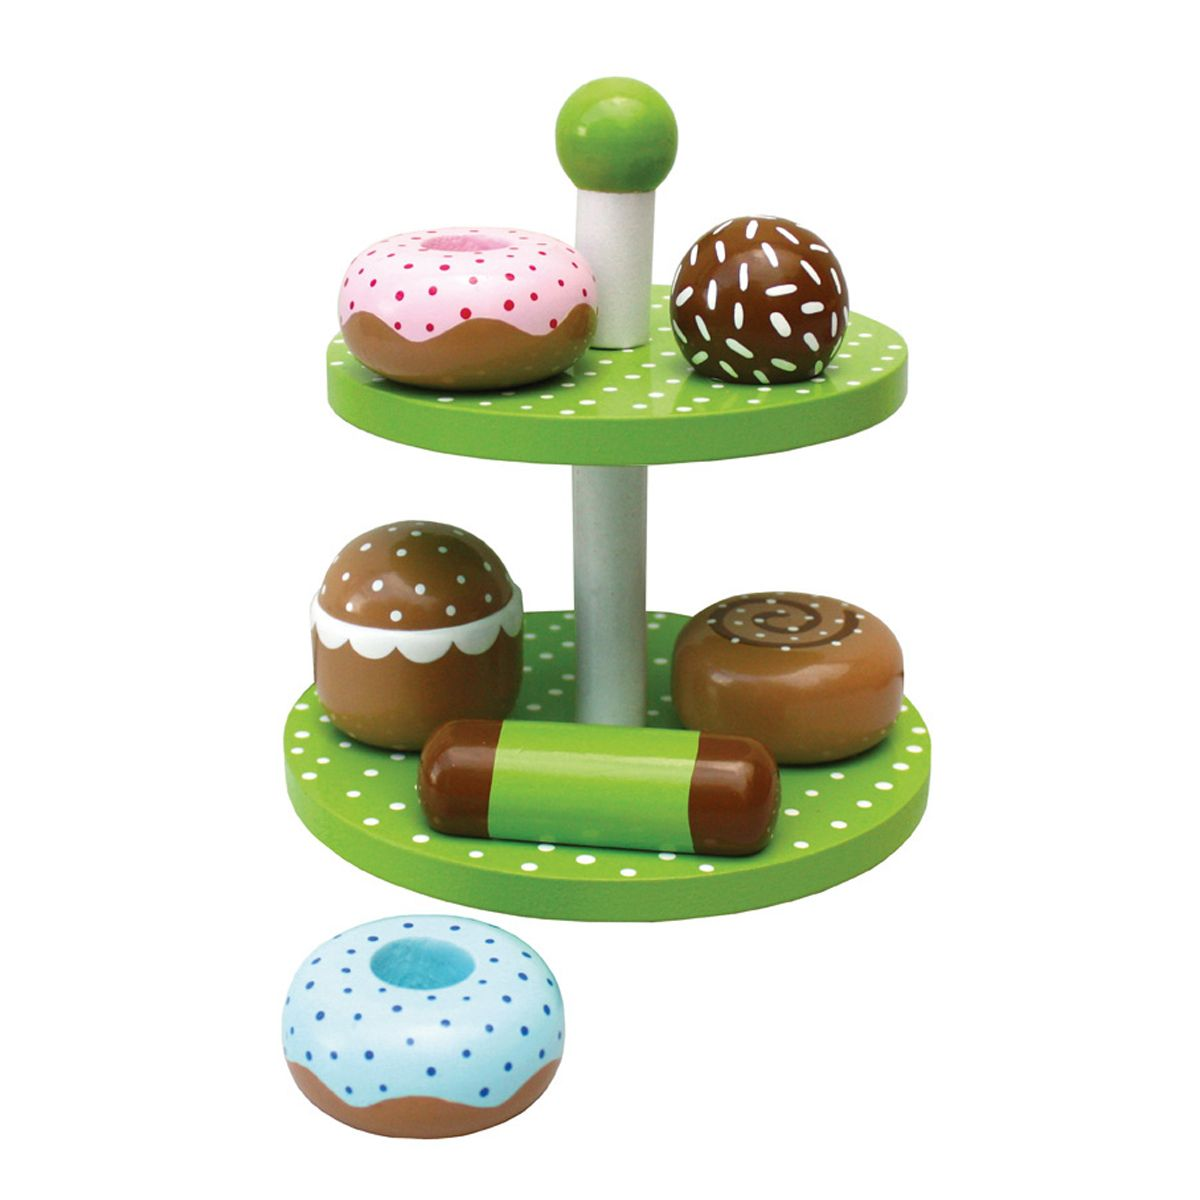 kinder holz etagere mit donuts geb ck von jabadabado kaufen. Black Bedroom Furniture Sets. Home Design Ideas